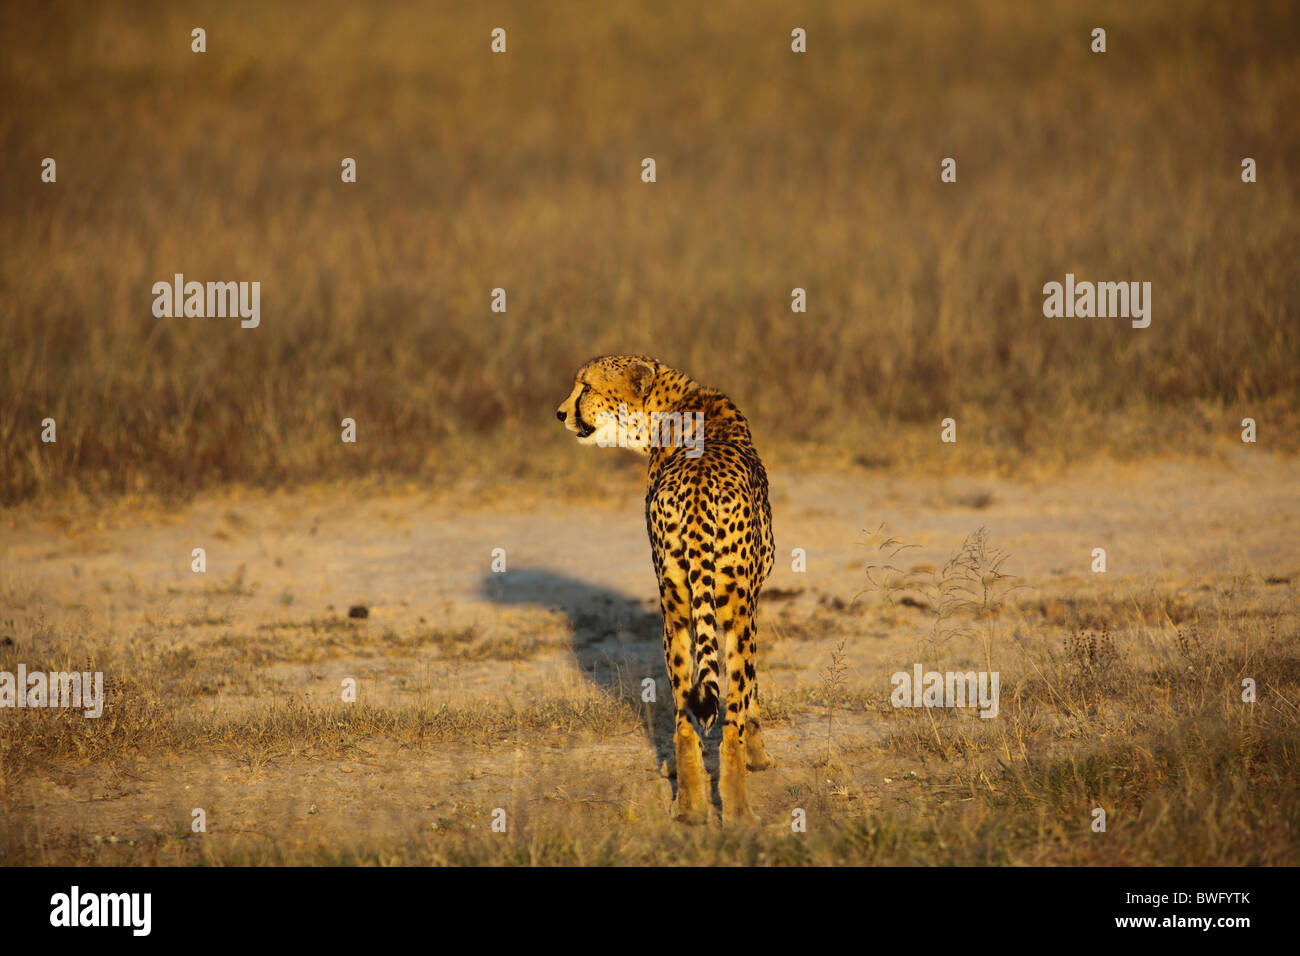 A Cheetah, Kruger National Park, South Africa - Stock Image